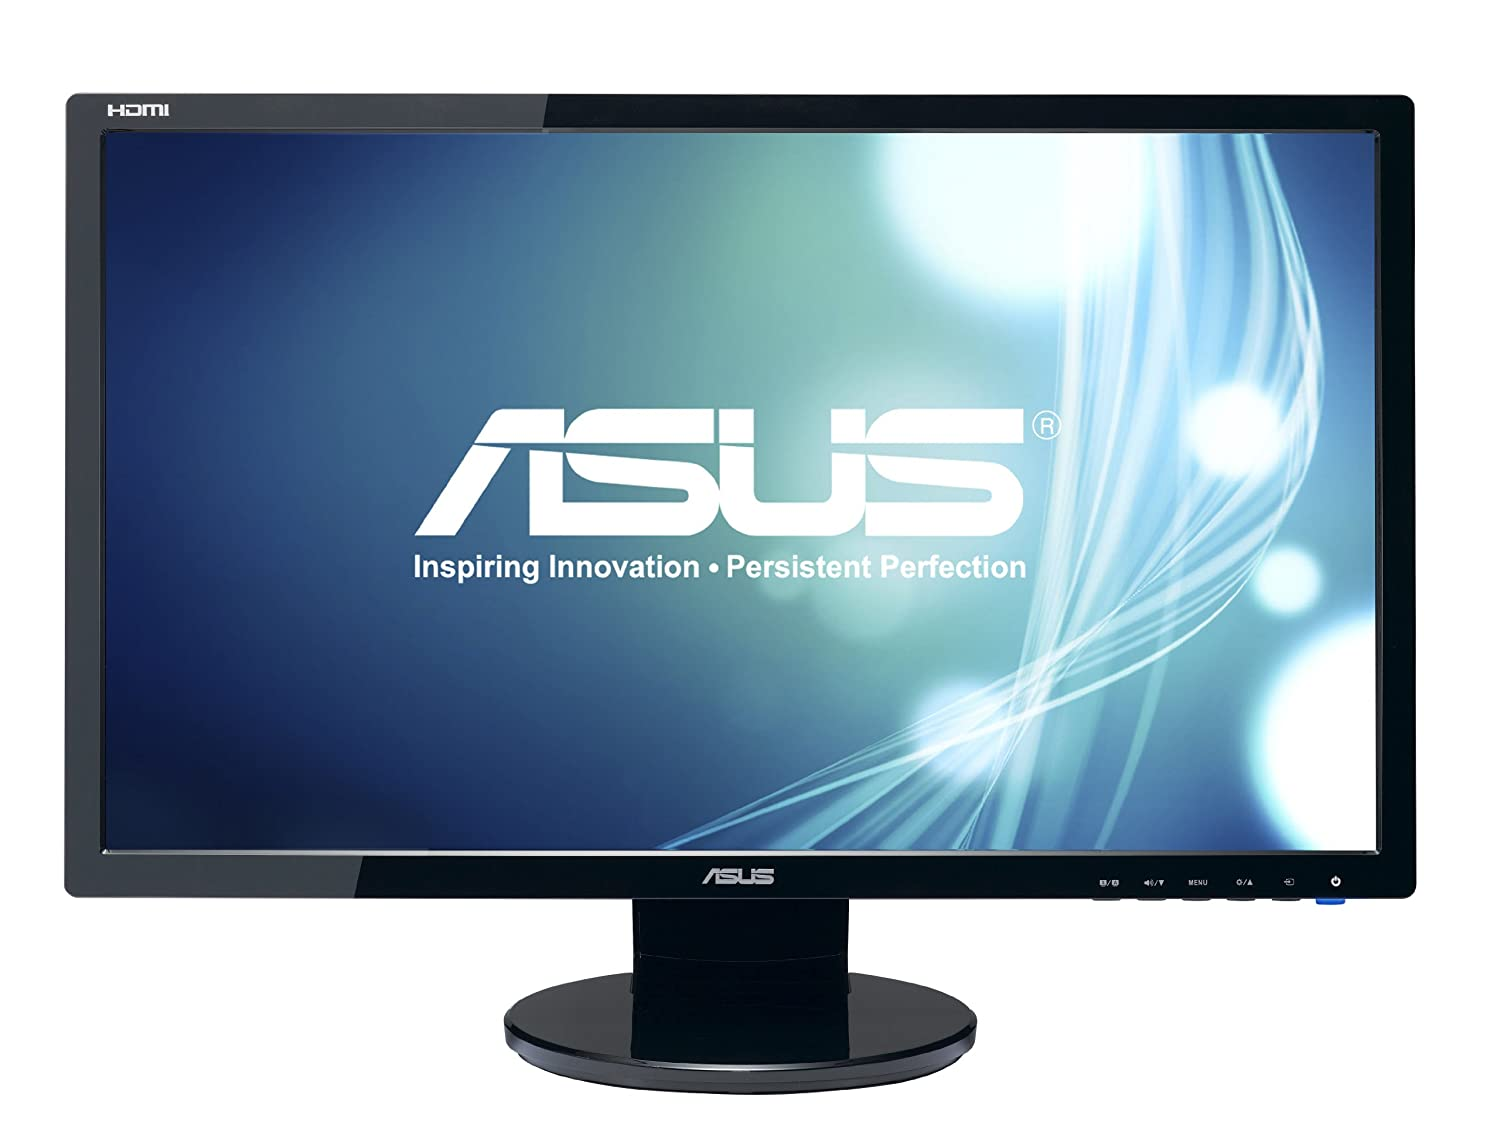 ASUS VE278Q 27-Inch LED Monitor, 1920 X 1080 Resolution, 10000000:1 Contrast Ratio